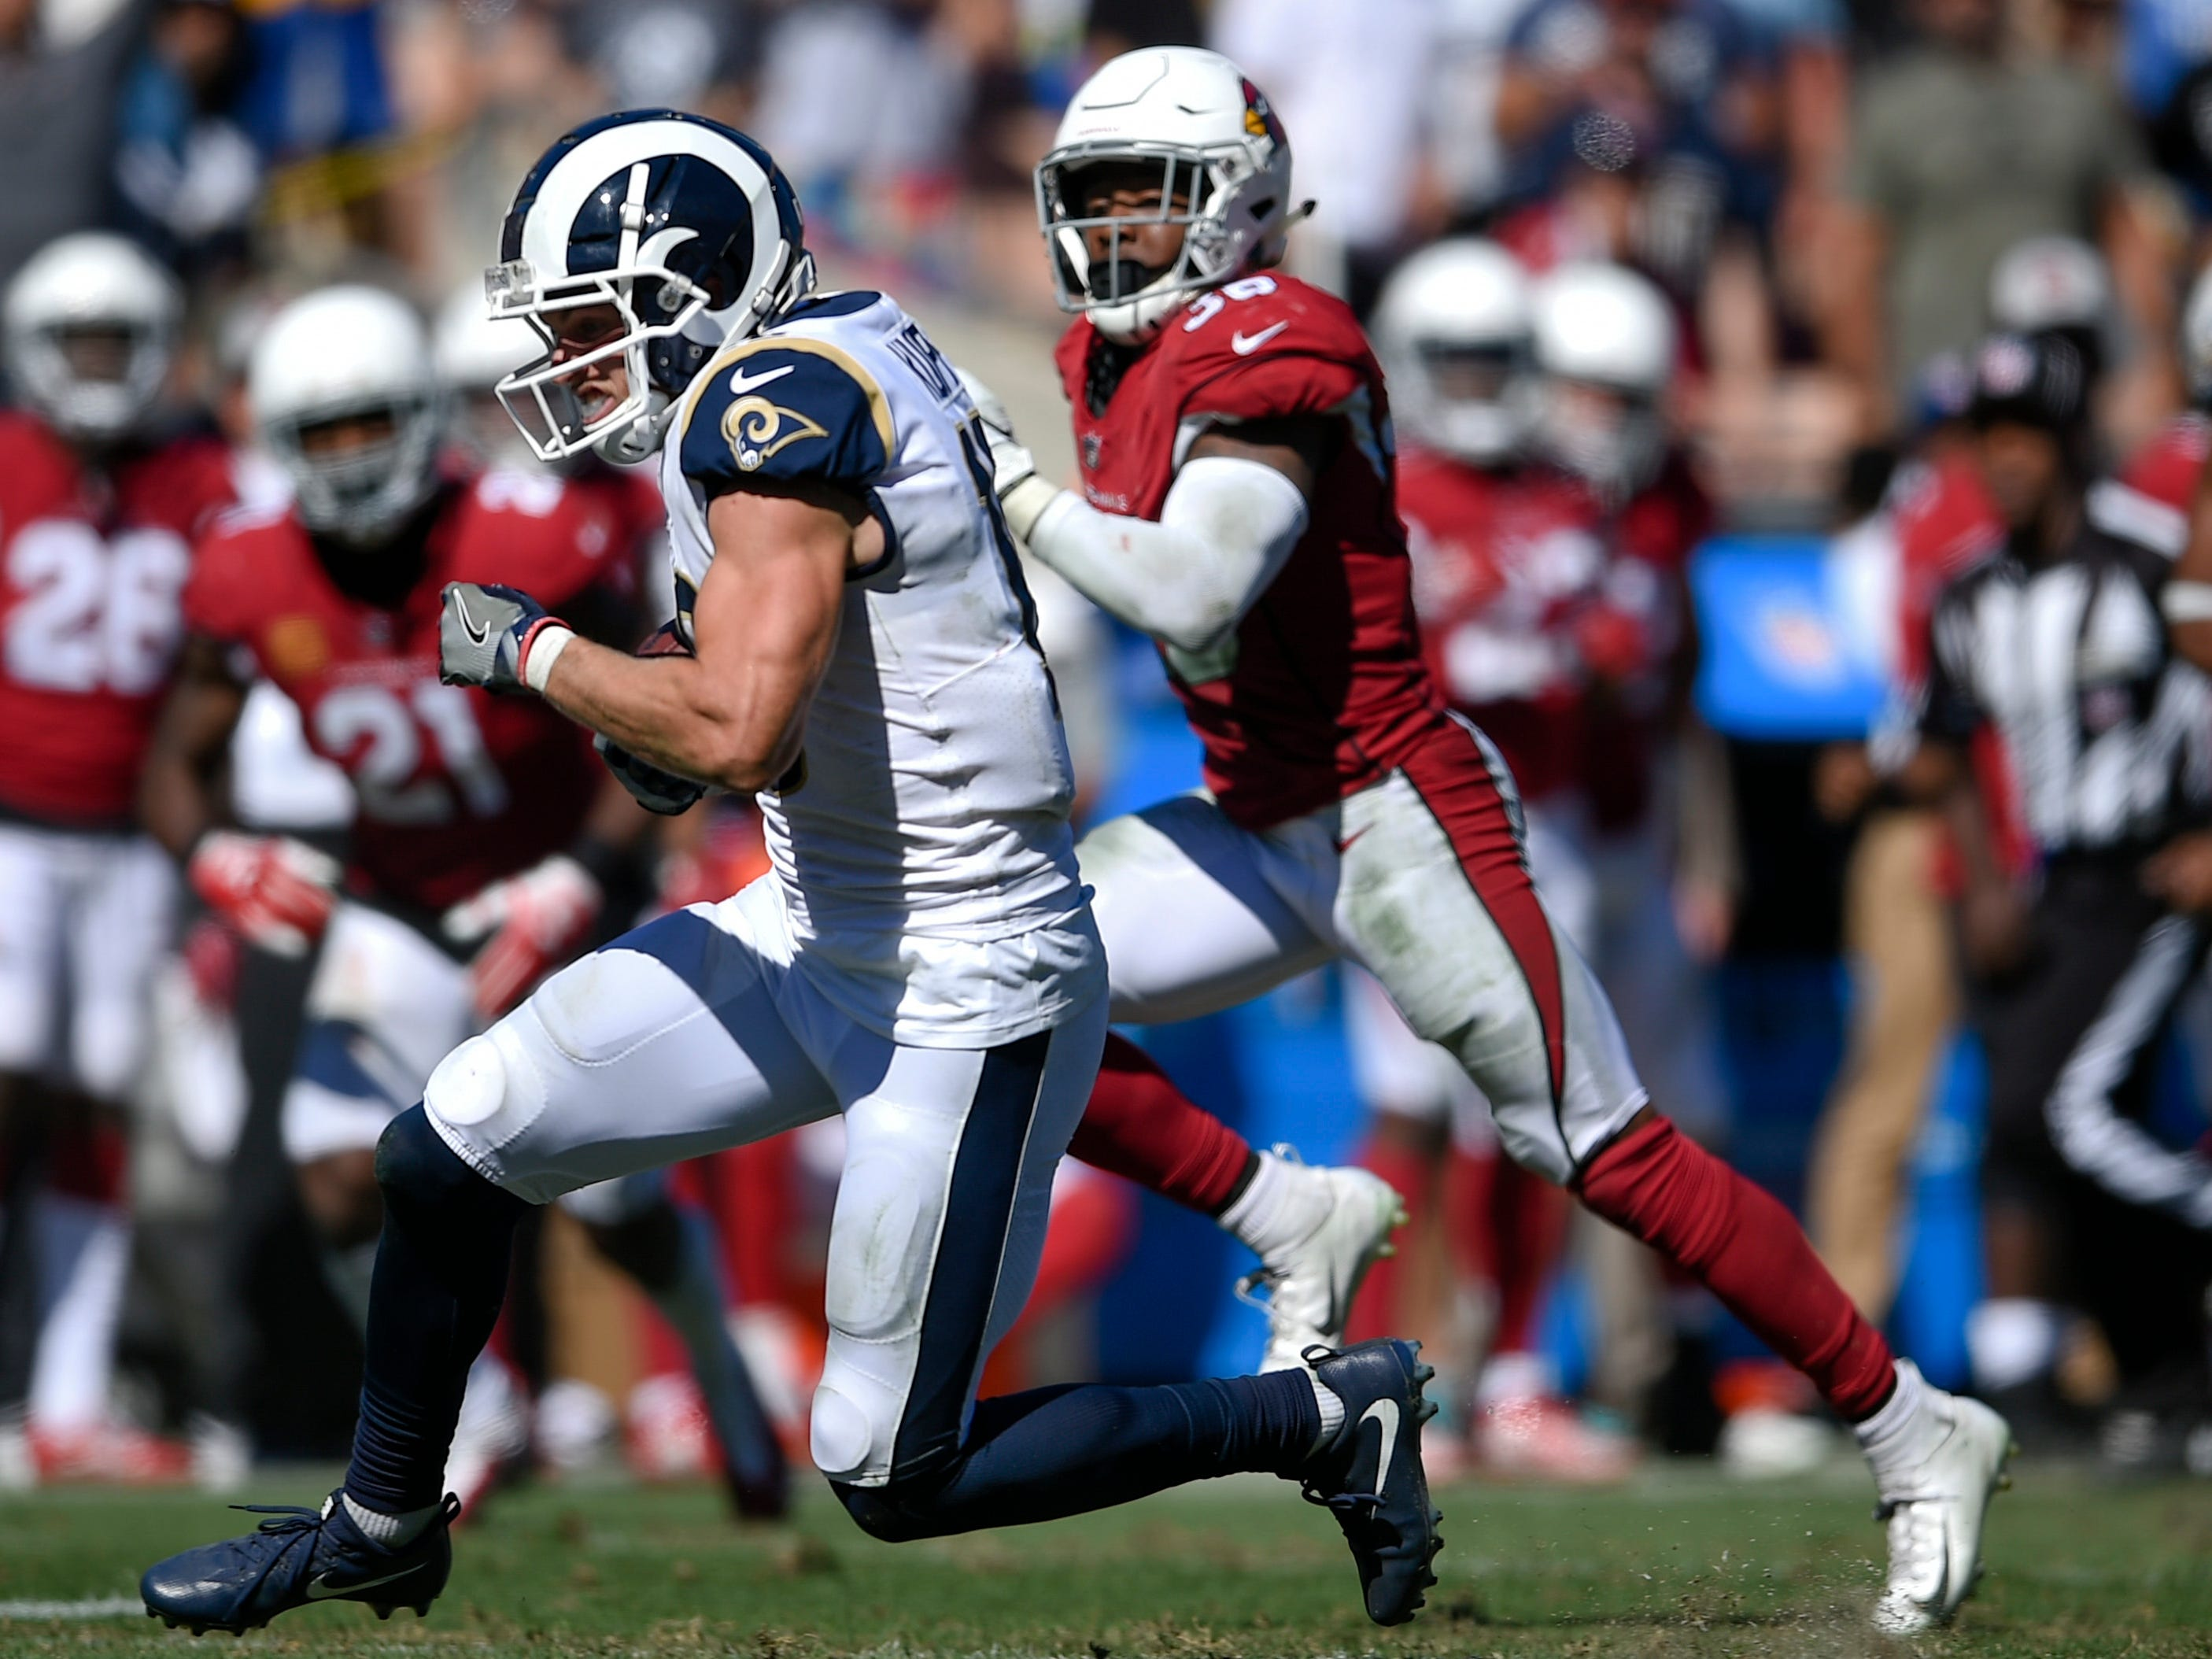 Sep 16, 2018; Los Angeles, CA, USA; Los Angeles Rams wide receiver Cooper Kupp (18) runs after a catch against the Arizona Cardinals during the second half at Los Angeles Memorial Coliseum. Mandatory Credit: Kelvin Kuo-USA TODAY Sports